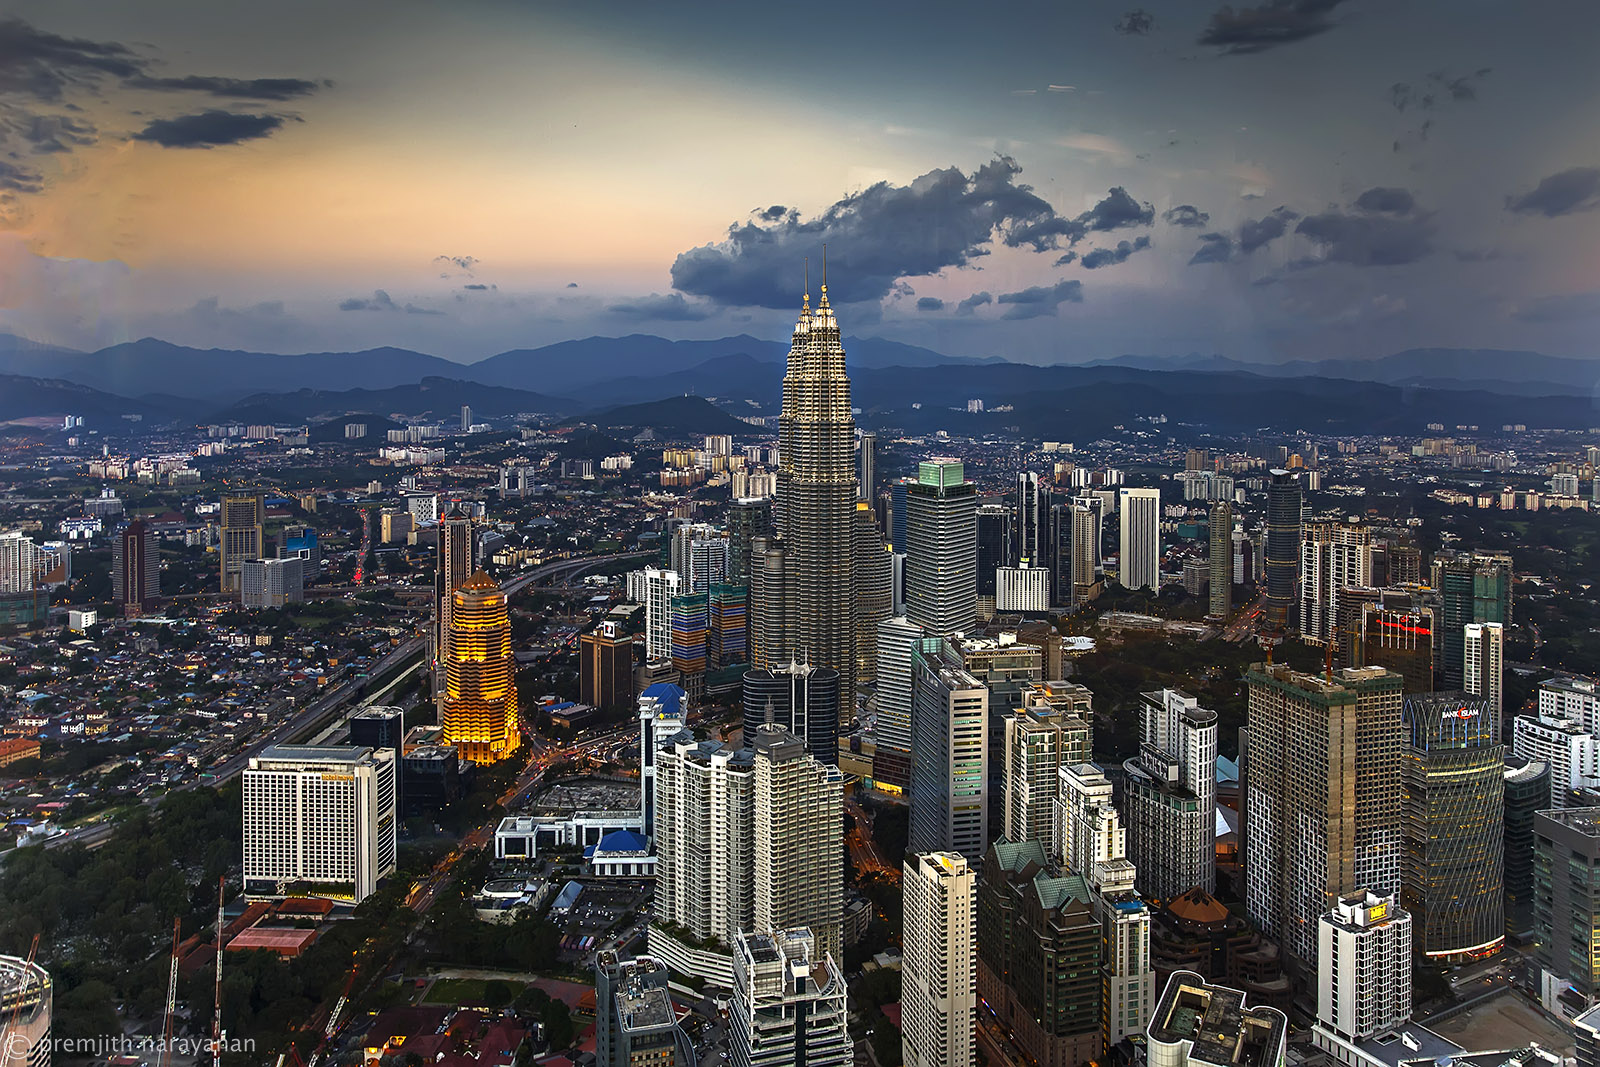 View of the Petronas from the KL Tower